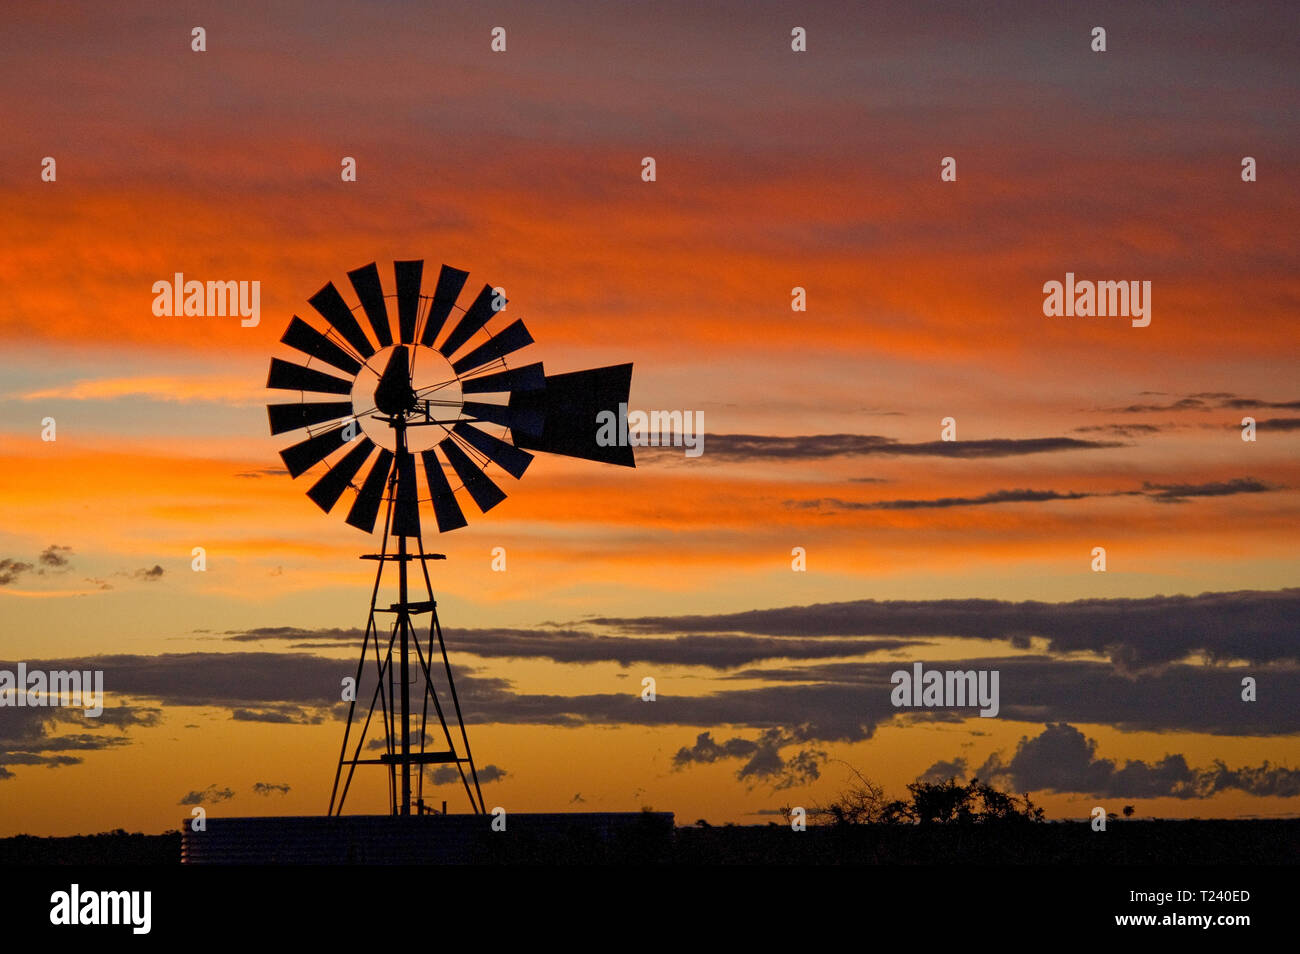 Wind wheel, silhouette at sunset, Valdes Peninsula, Nature Reserve, Patagonia, Argentina Stock Photo